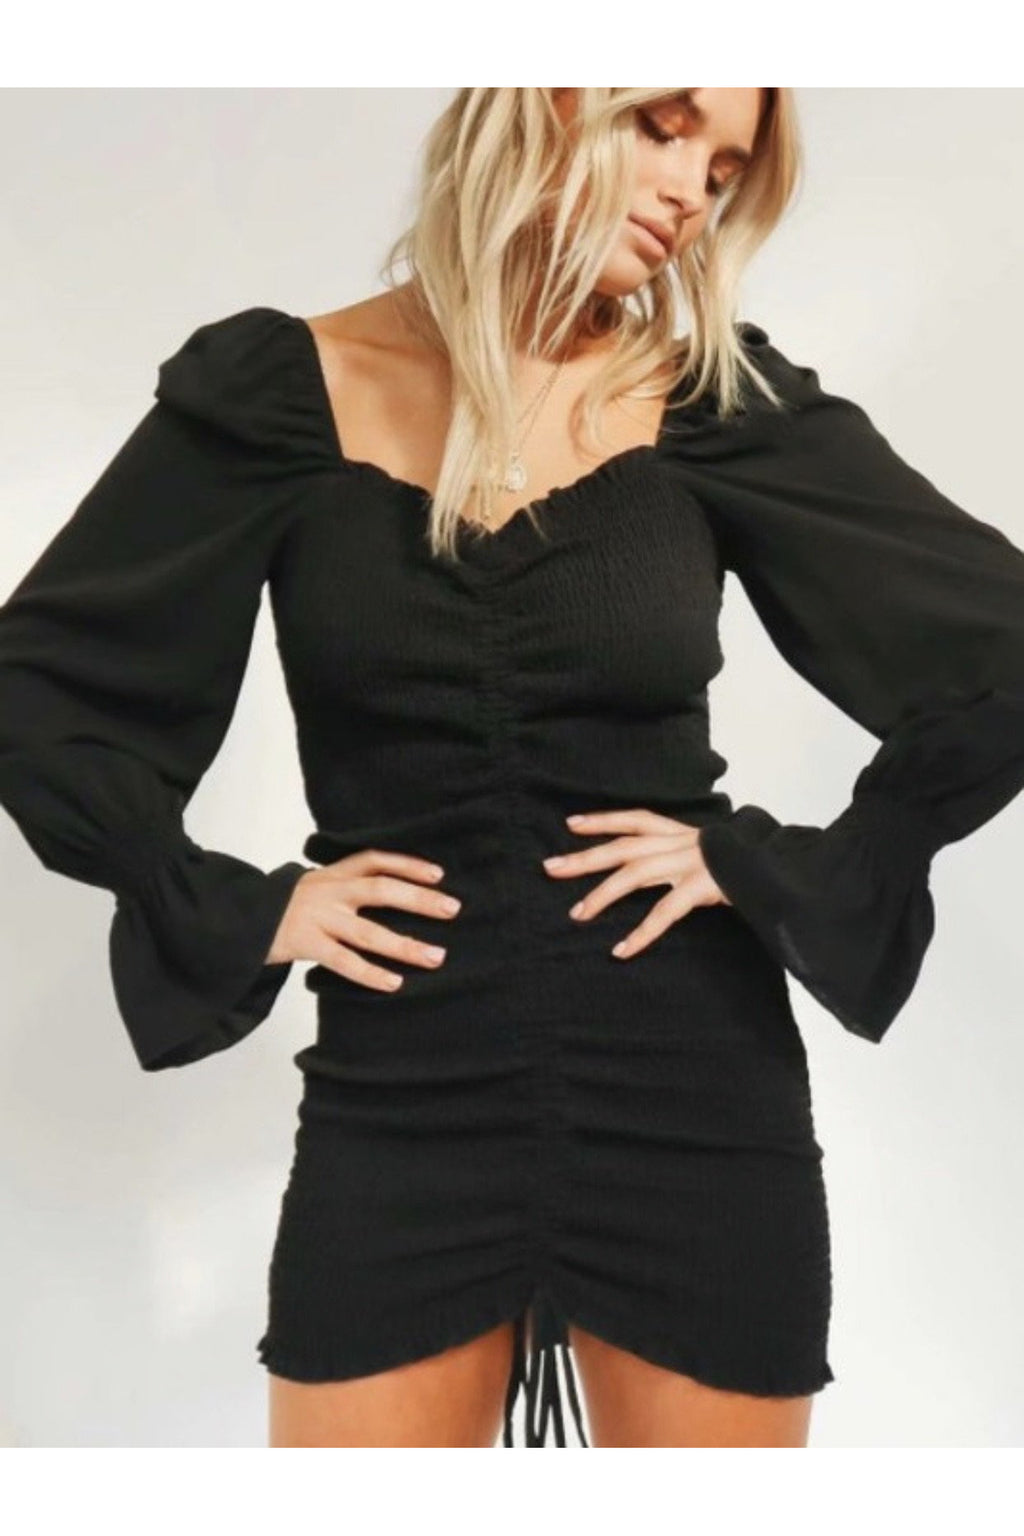 Amalia Sweetheart Dress in Black $48